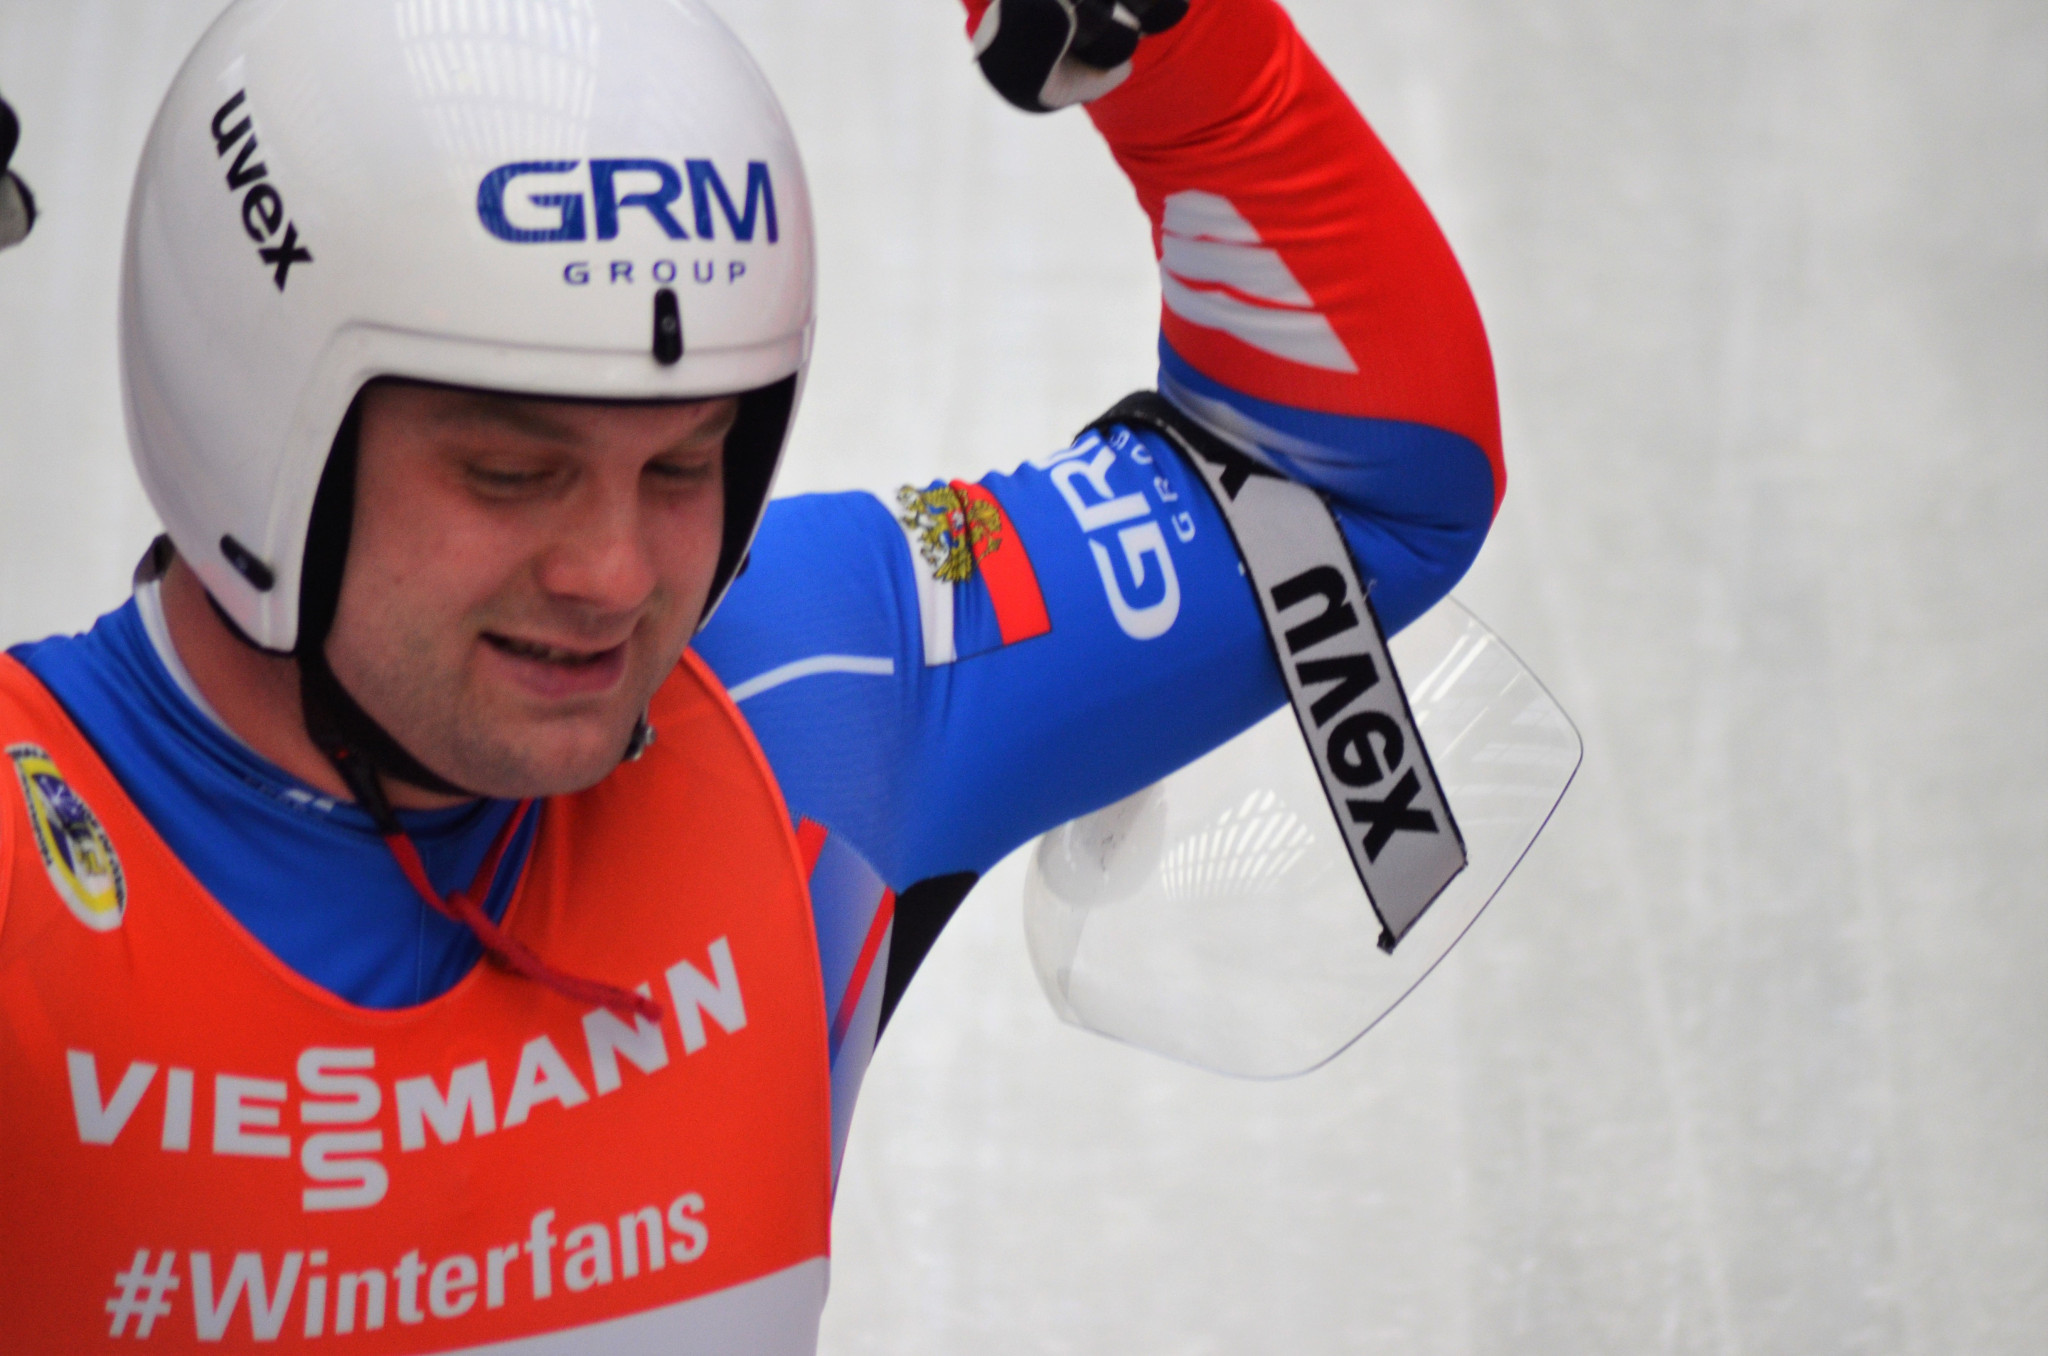 Russia's Semen Pavlichenko won twice in Sochi to be named the men's overall FIL Luge World Cup winner ©FIL